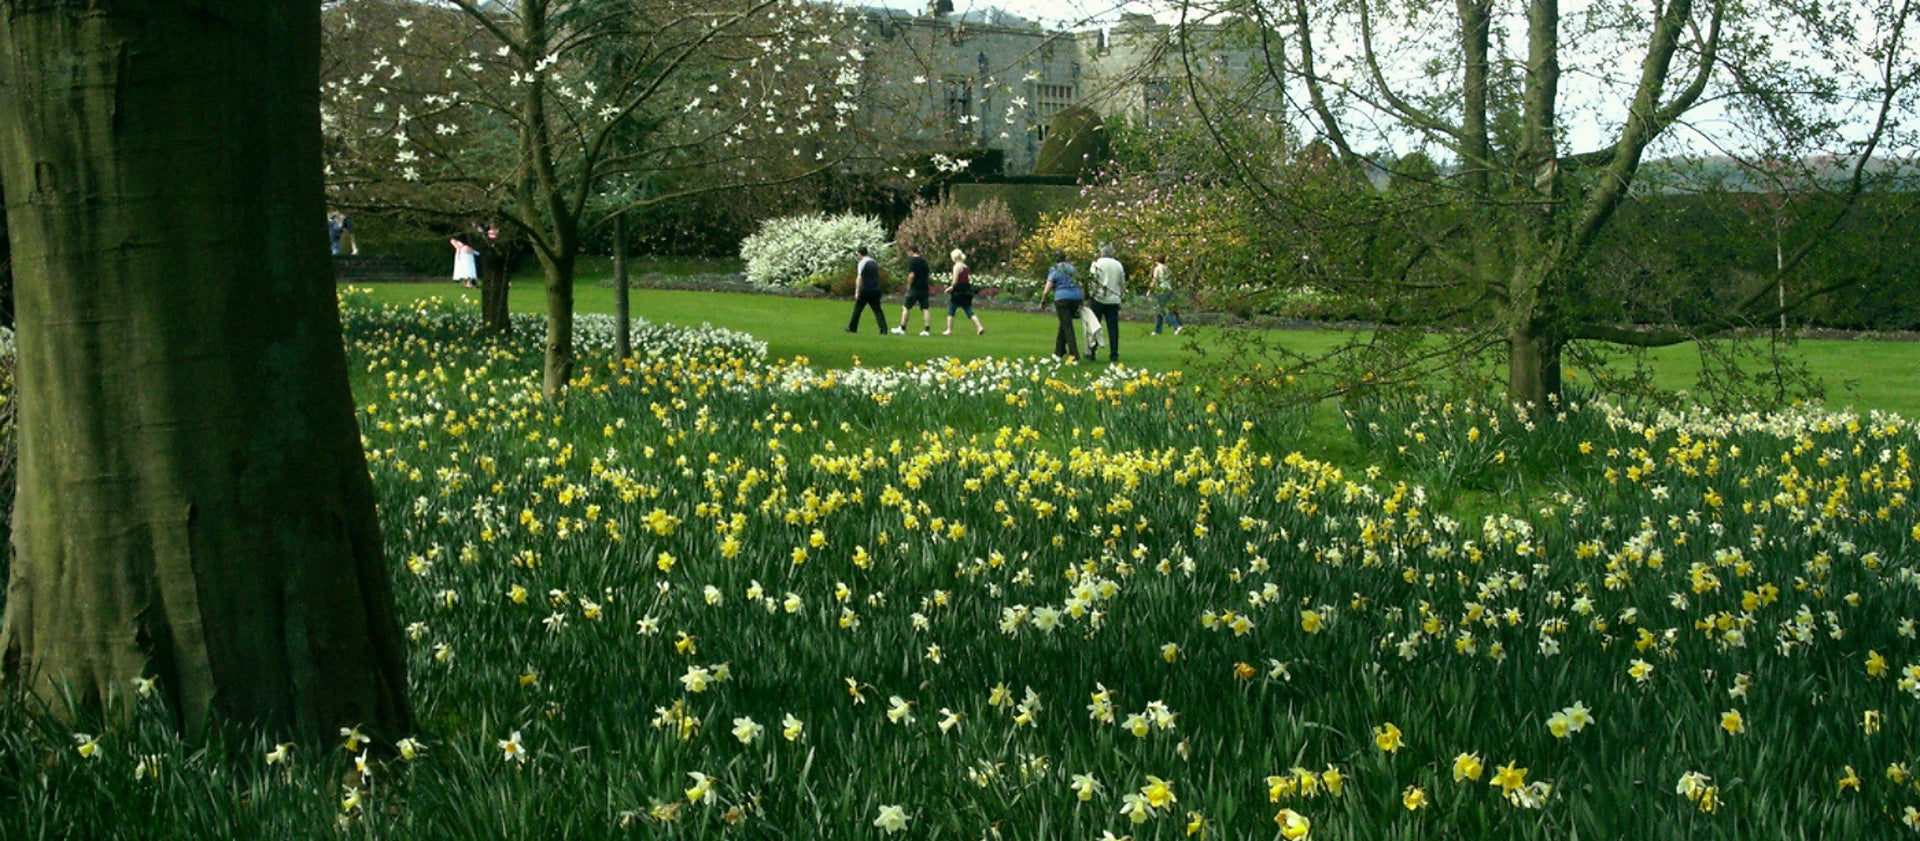 Find the signs of spring at Chirk Castle | National Trust